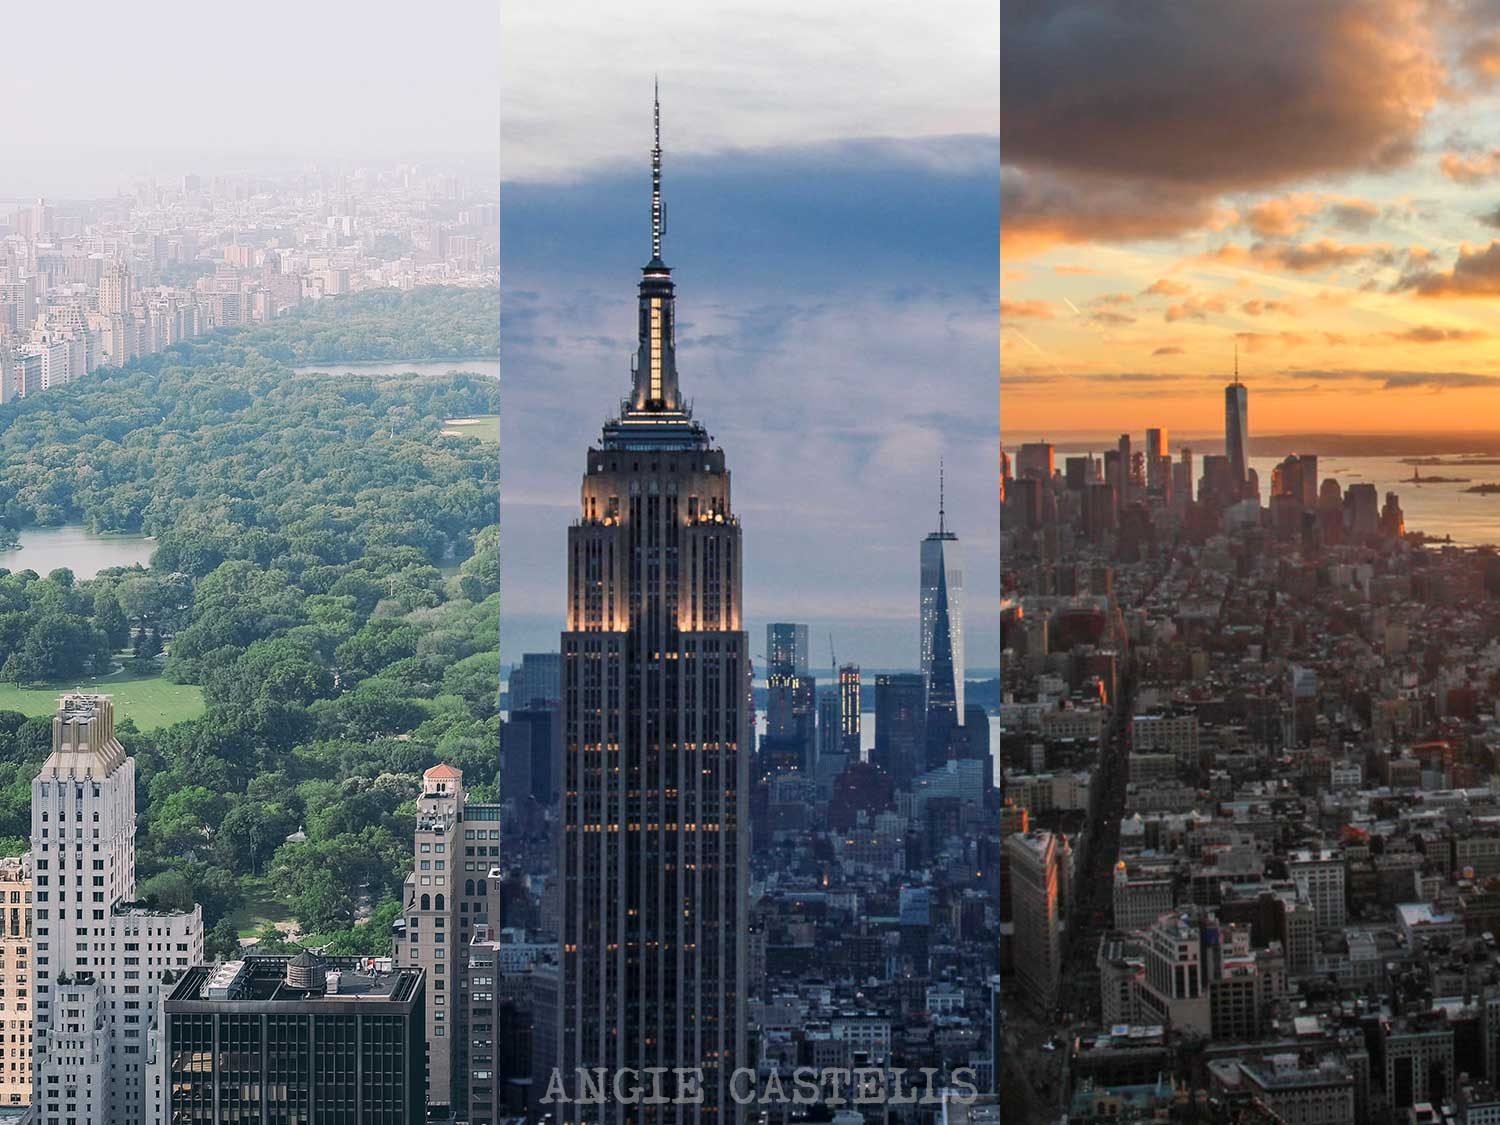 Mejor-mirador-Nueva-York-Top-of-The-Rock-Empire-State-One-World